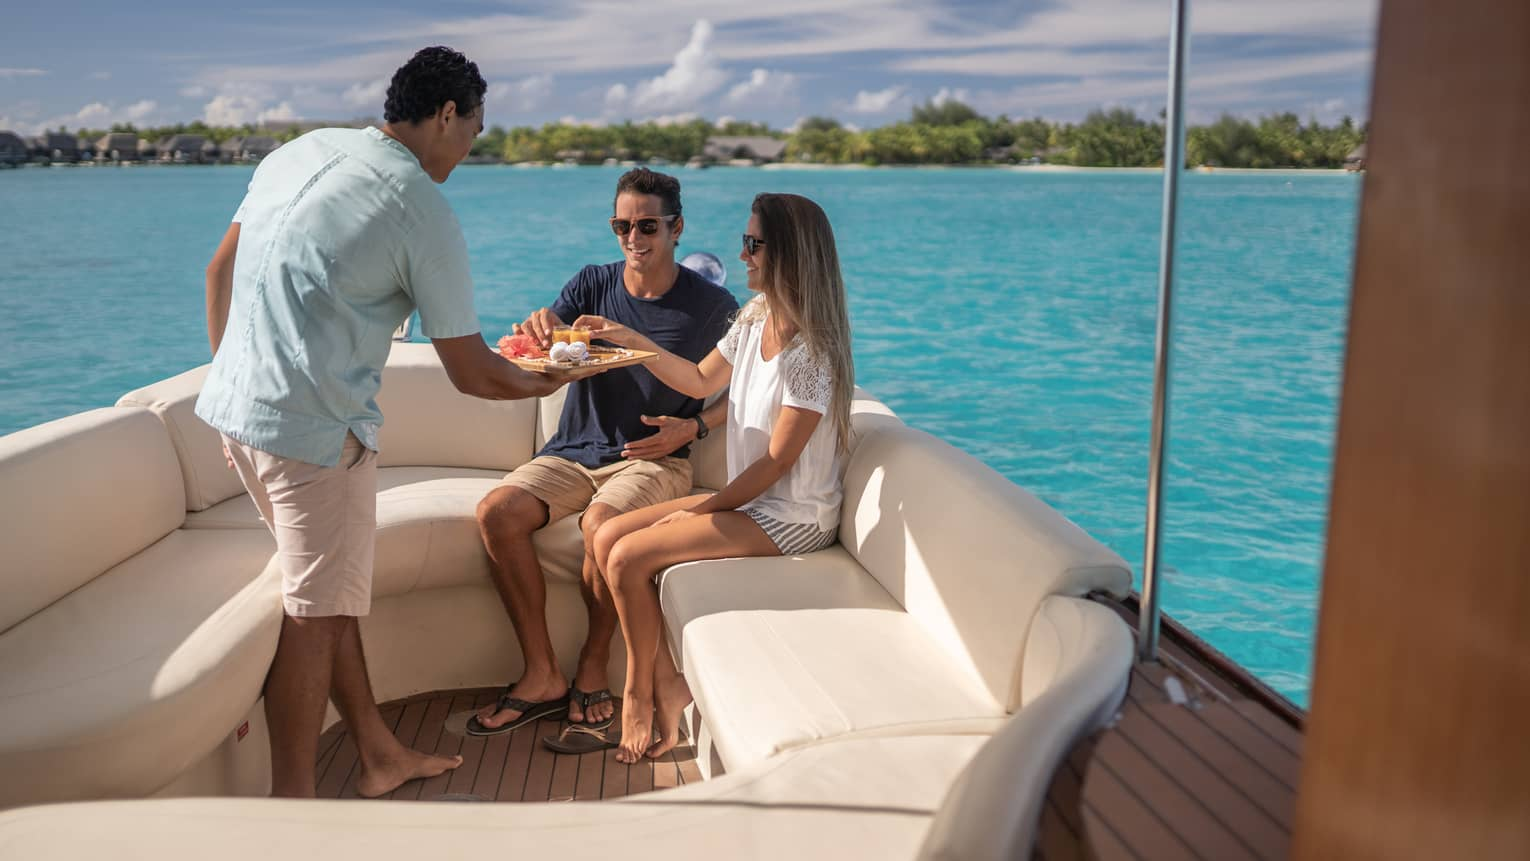 Staff serves juice to couple at edge of yacht on Bora Bora lagoon